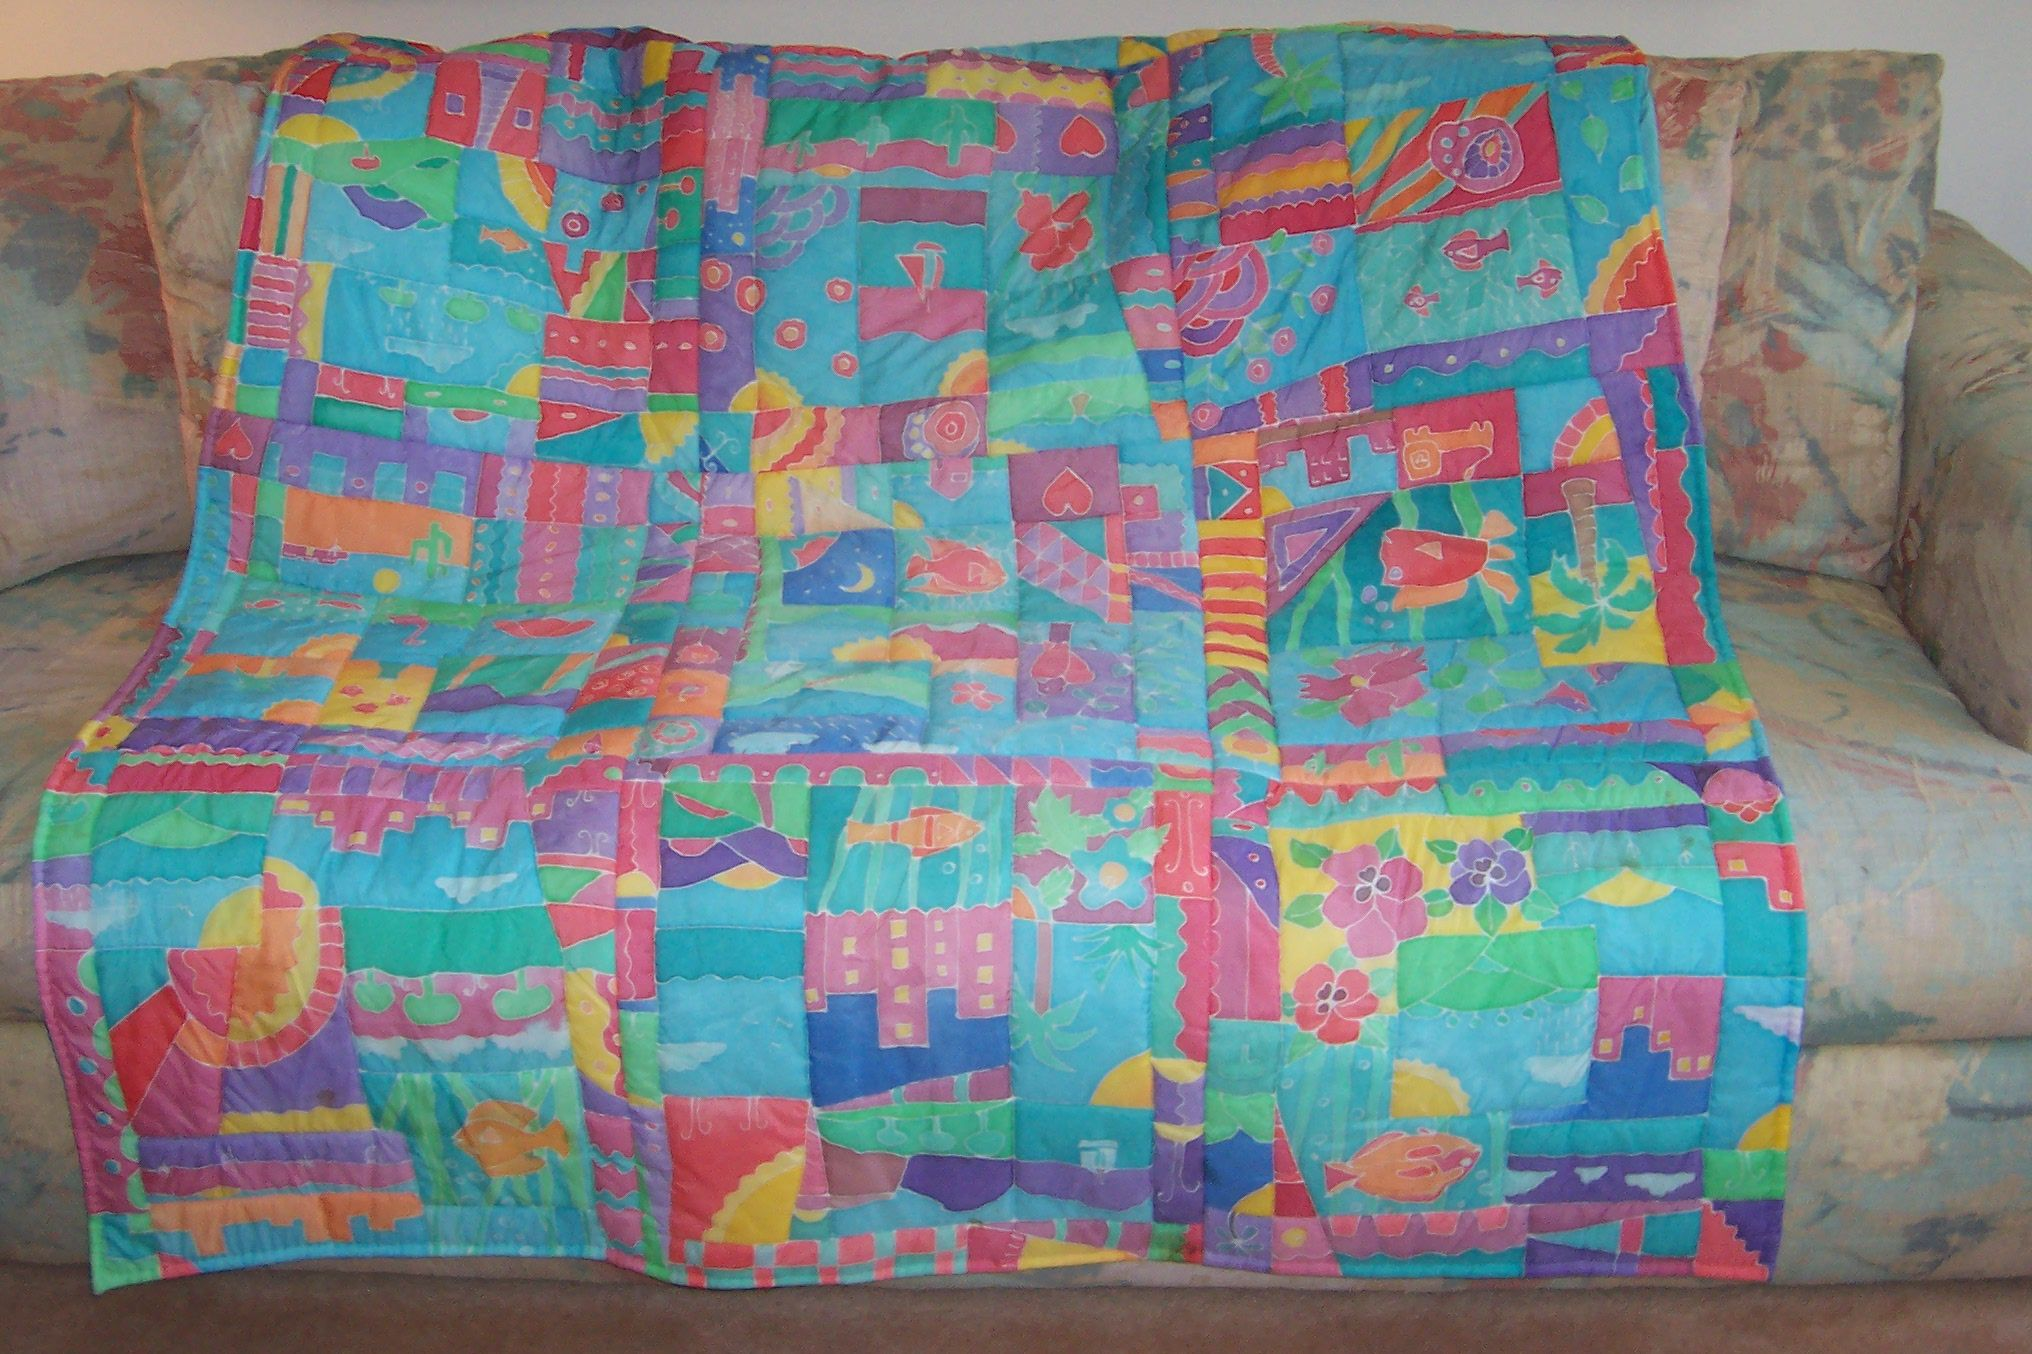 This is the same quilt only a different view.